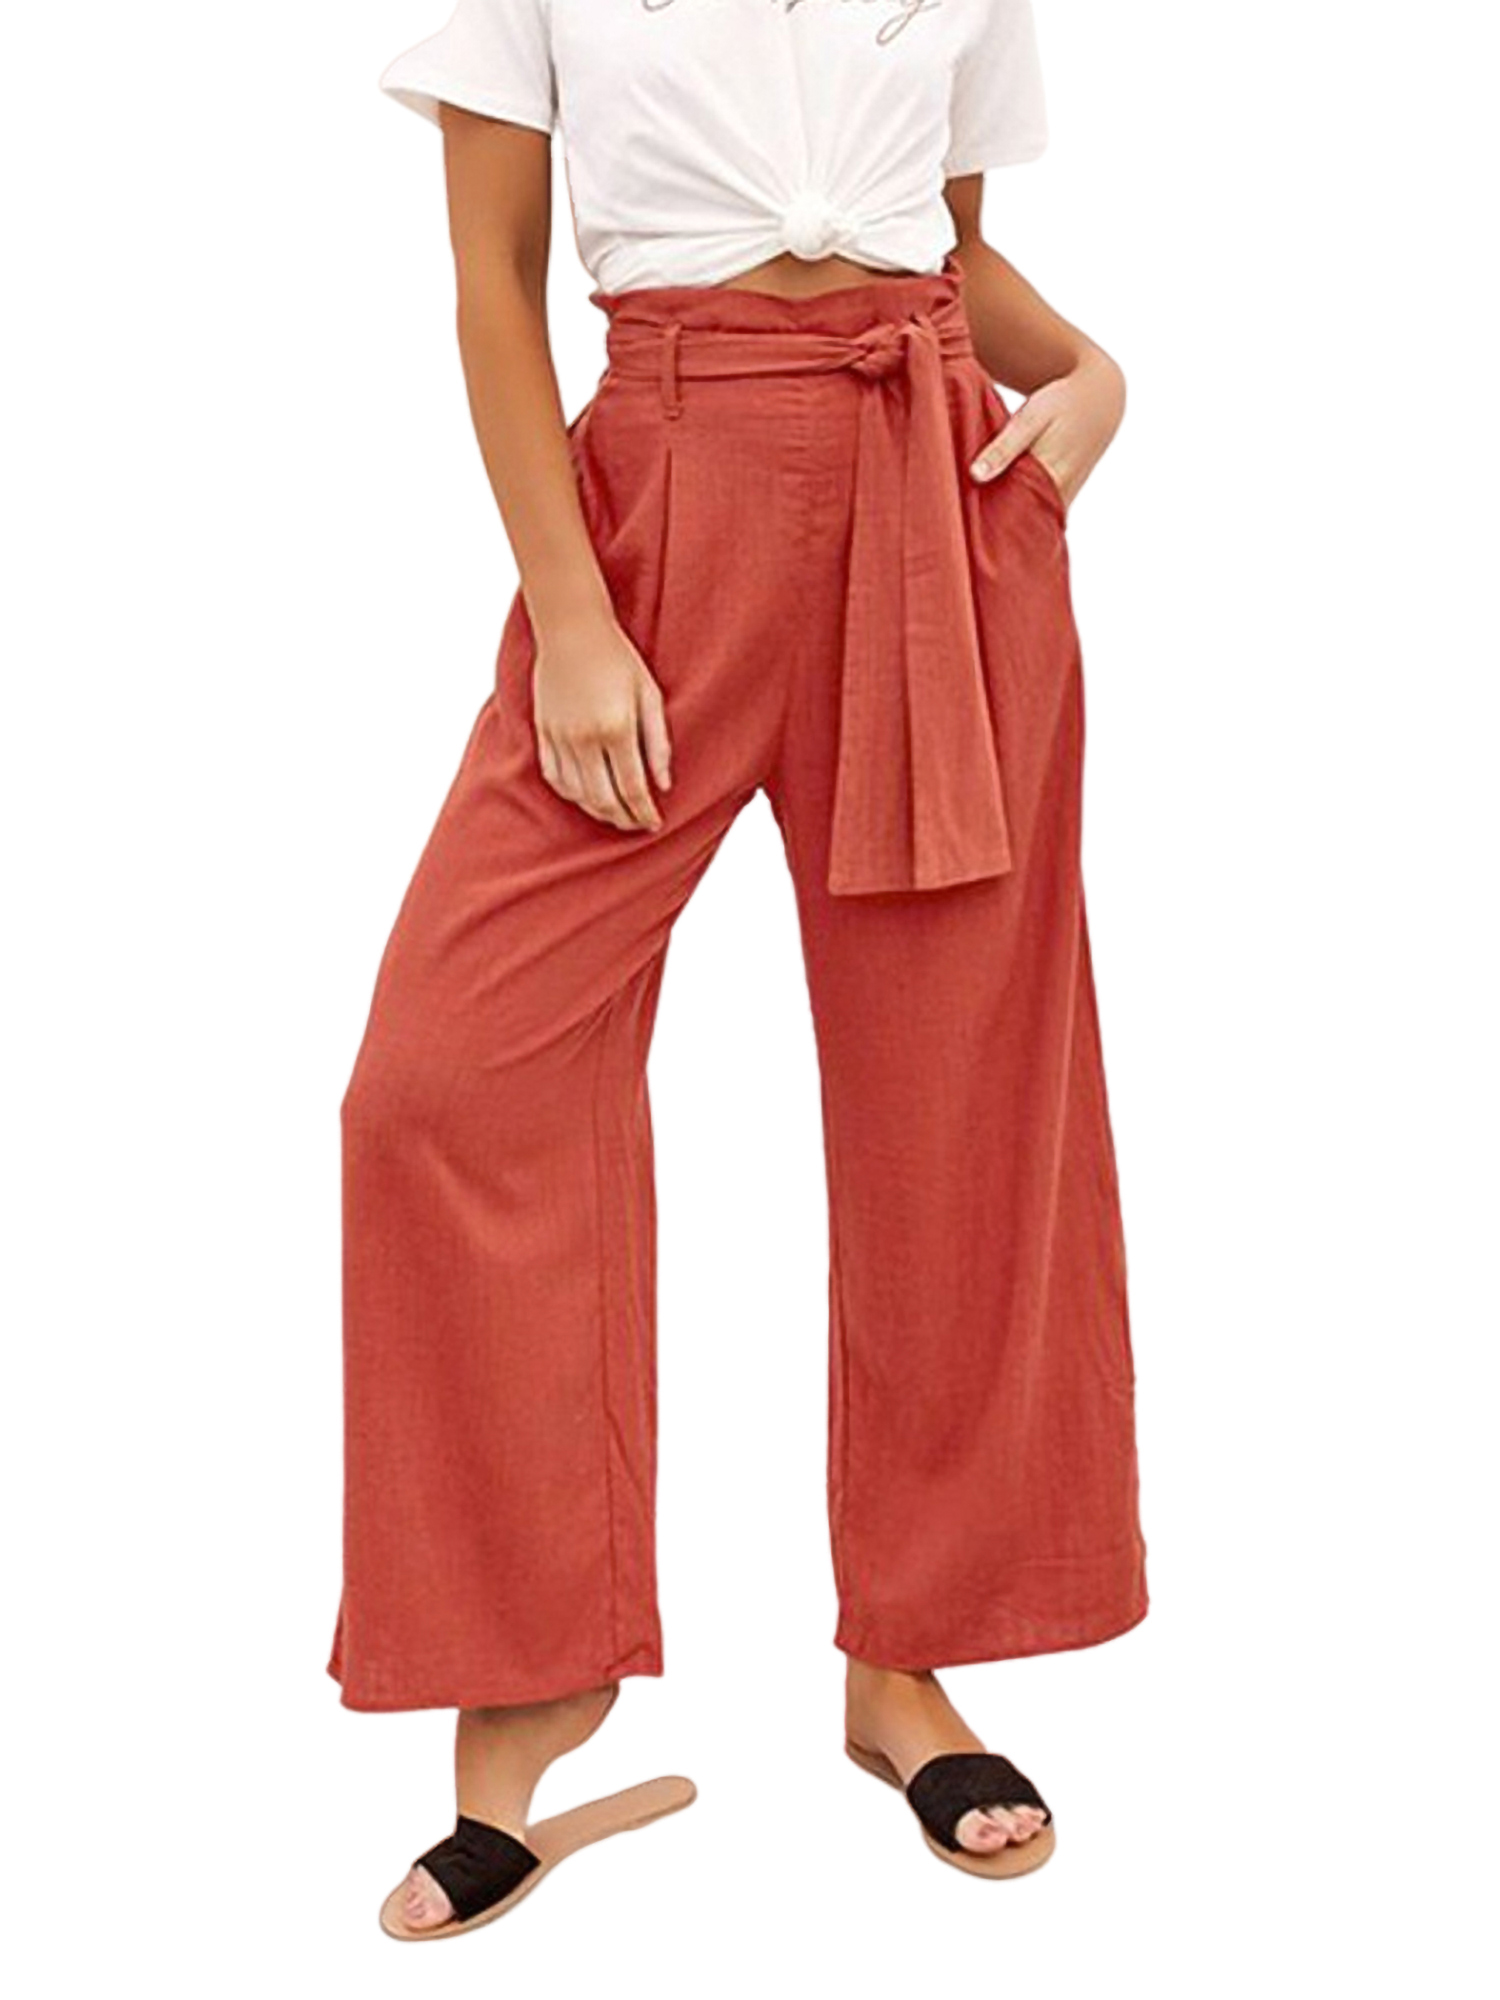 Womens Cotton Linen Trousers Ladies Loose Casual Pants Elasticated Waist Bottoms